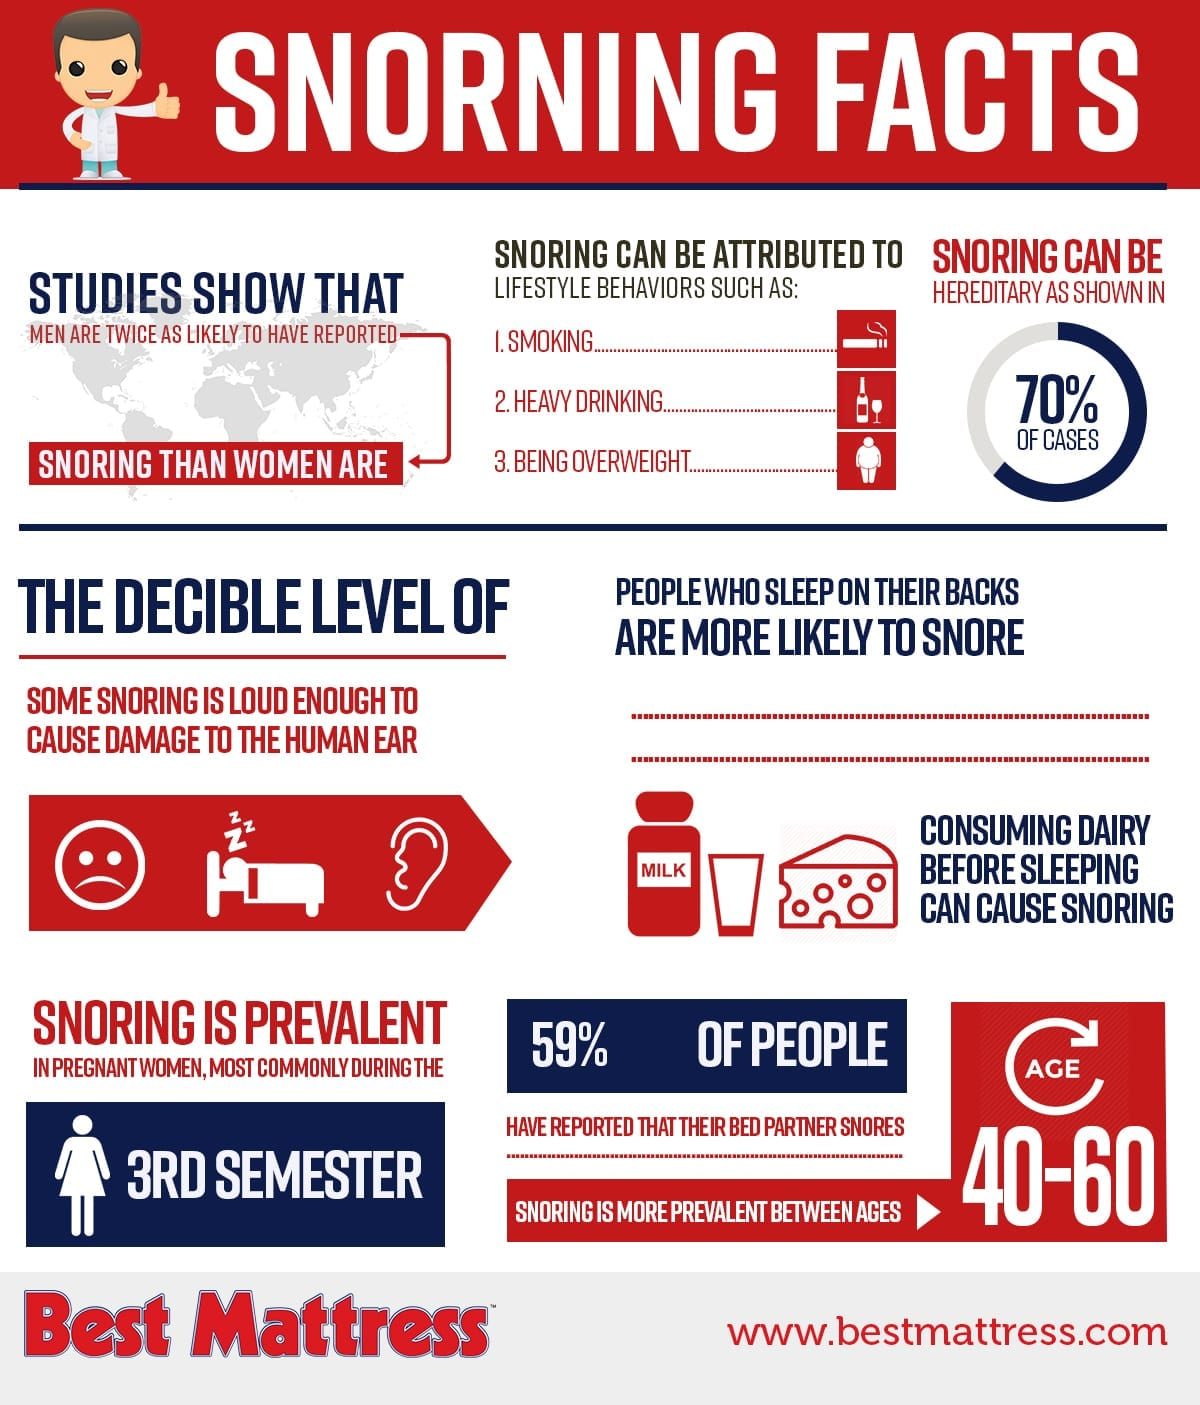 Learn more about snoring from Best Mattress in Las Vegas, Mesquite and St. George Utah